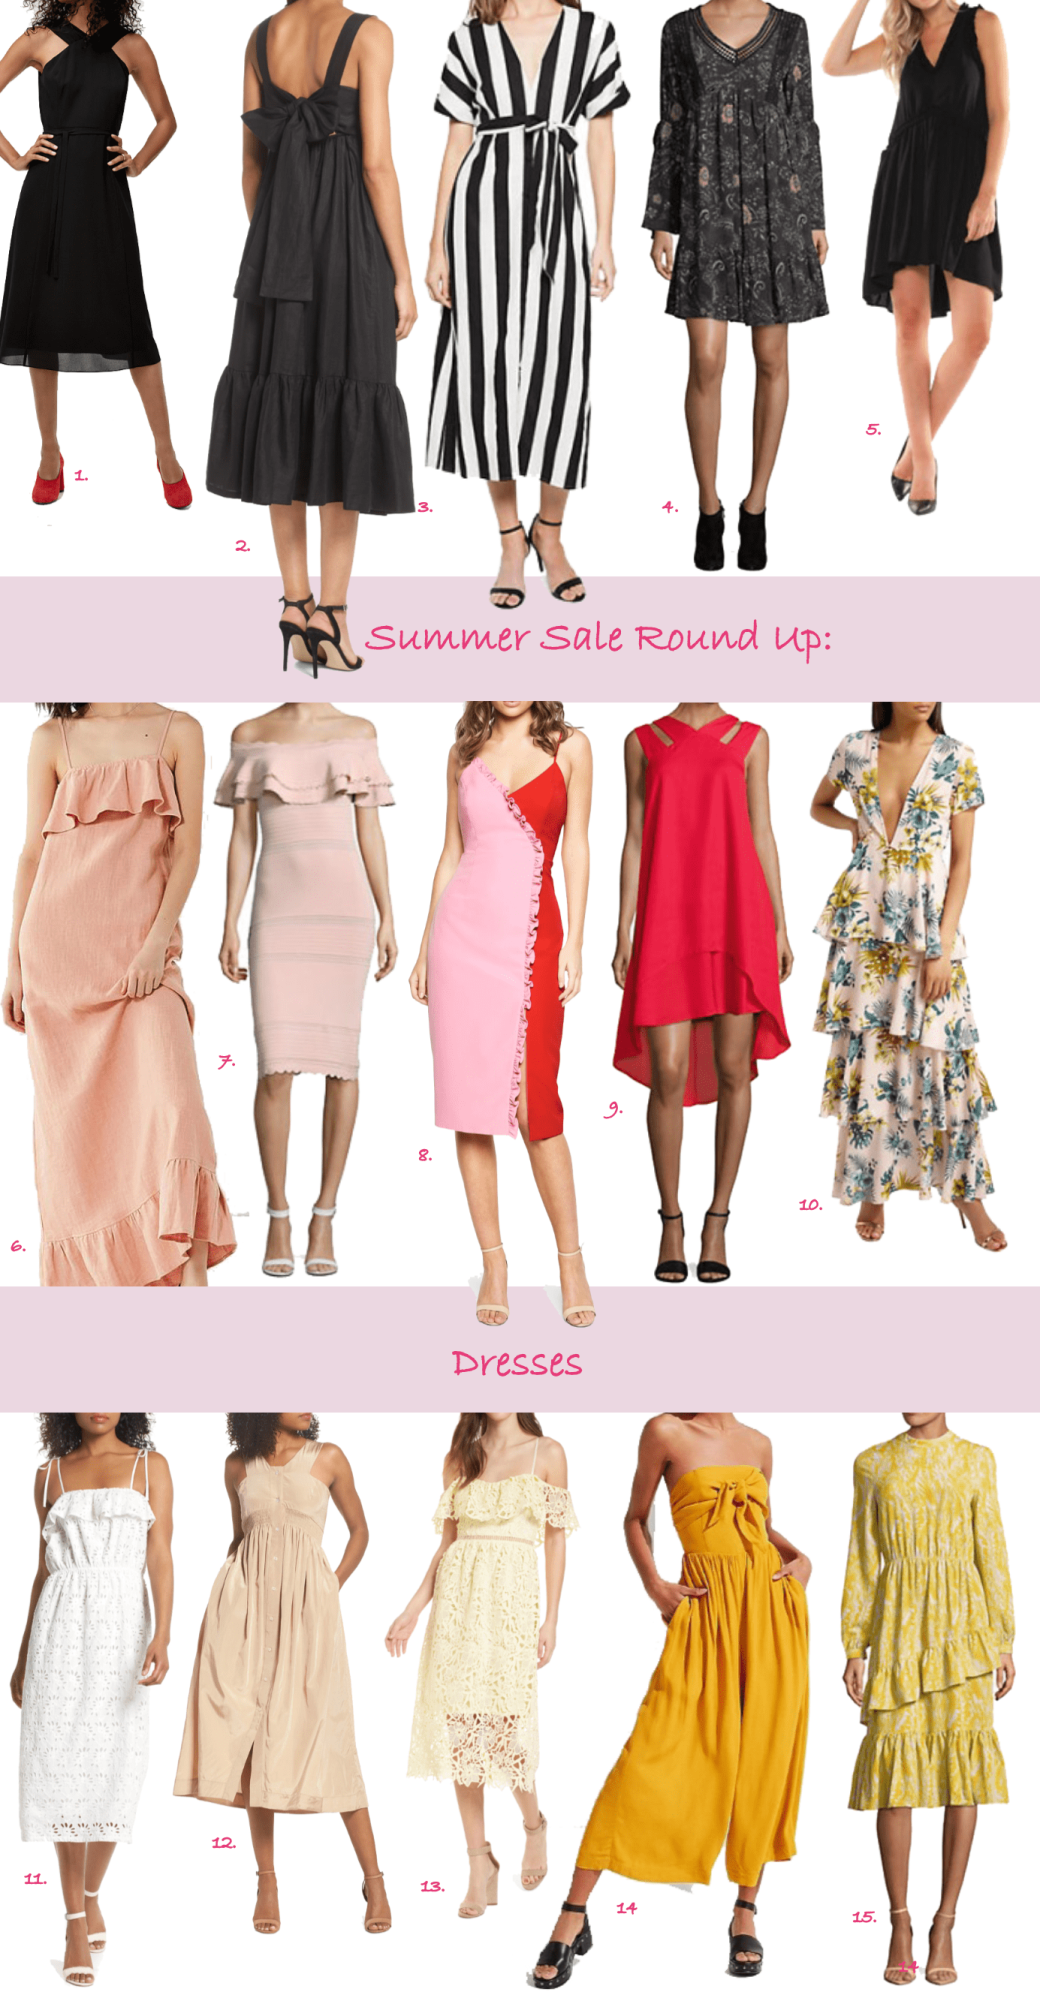 summer-sale-round-up-dresses-header-32.png